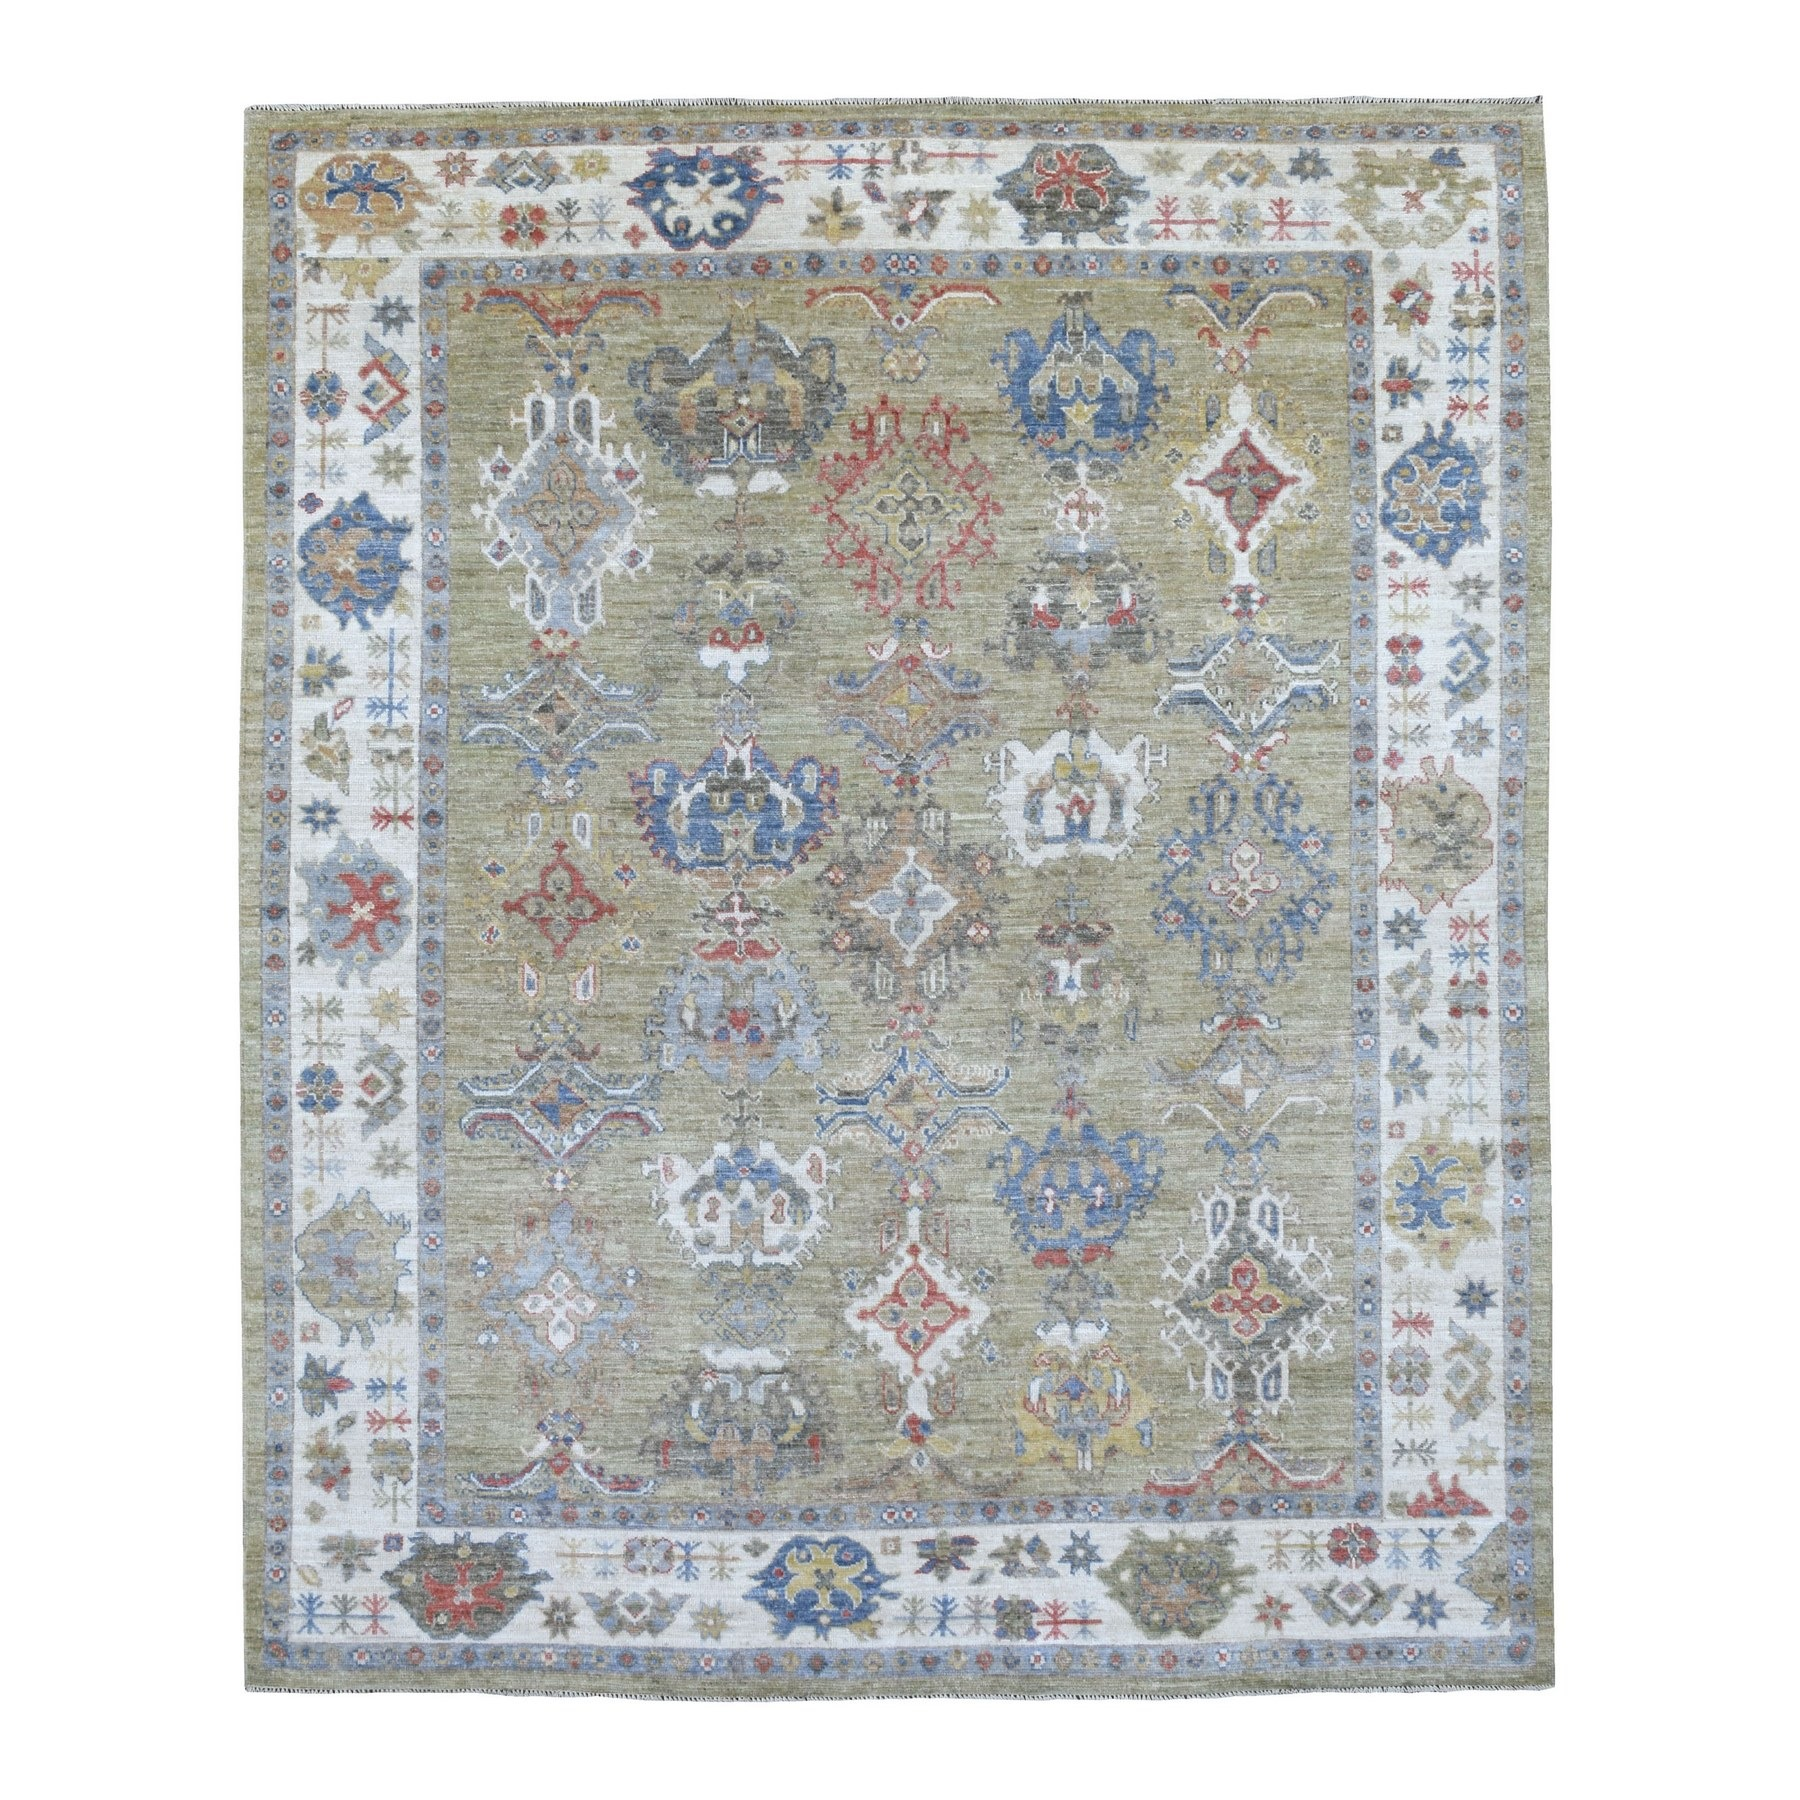 Oushak And Peshawar Rugs LUV607266